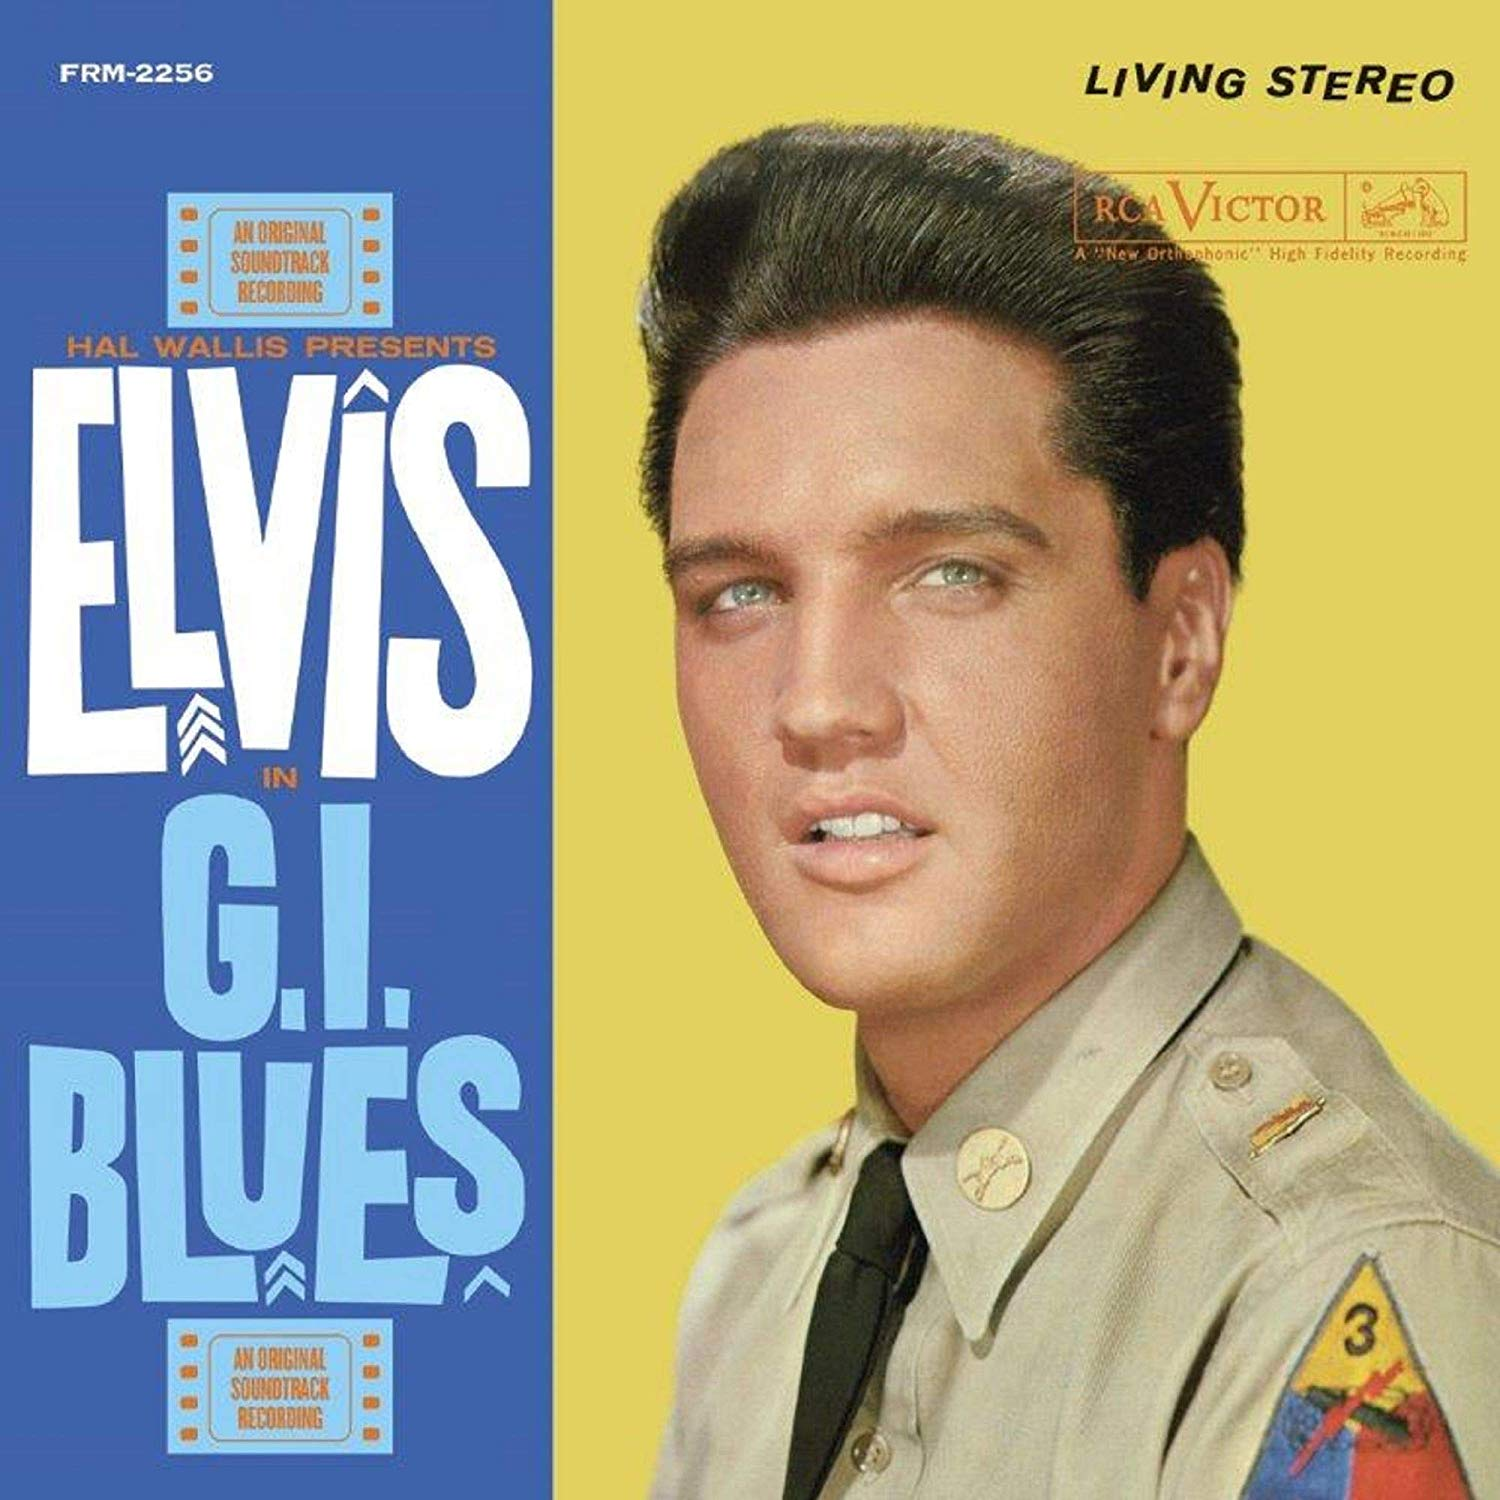 Elvis Presley - G.i. Blues Audiophile